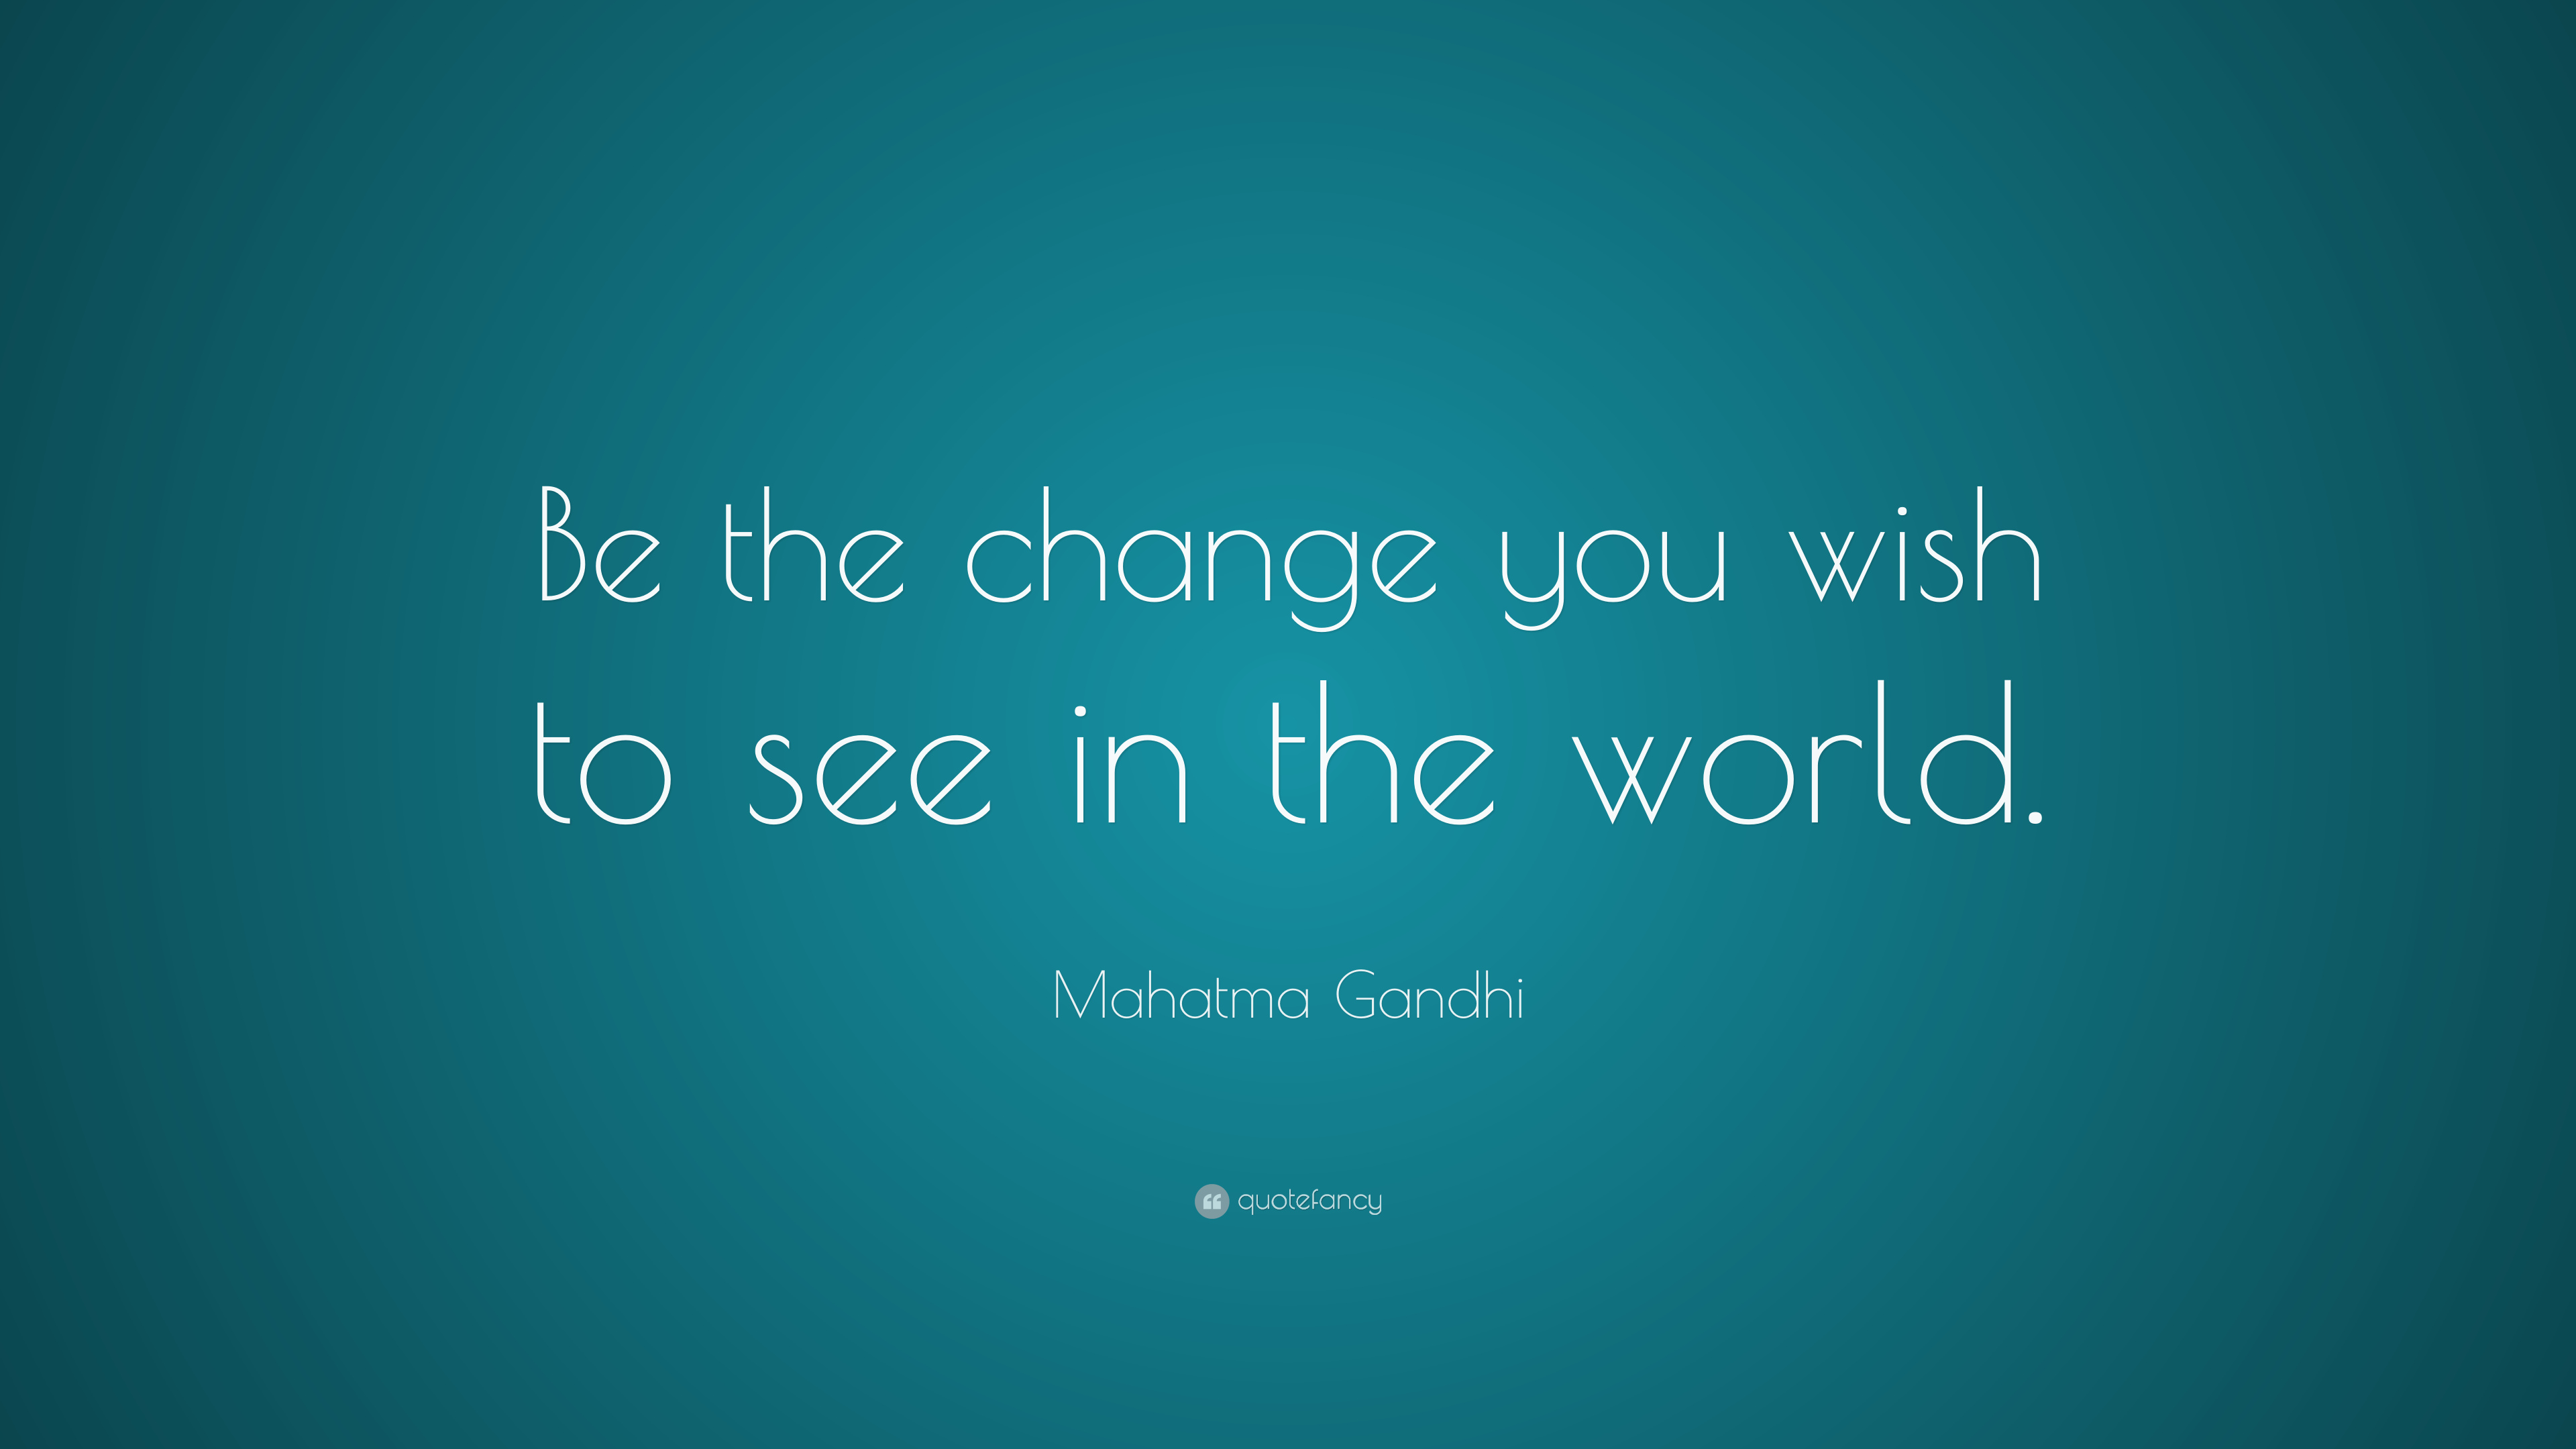 mahatma gandhi quote be the change that you wish to see